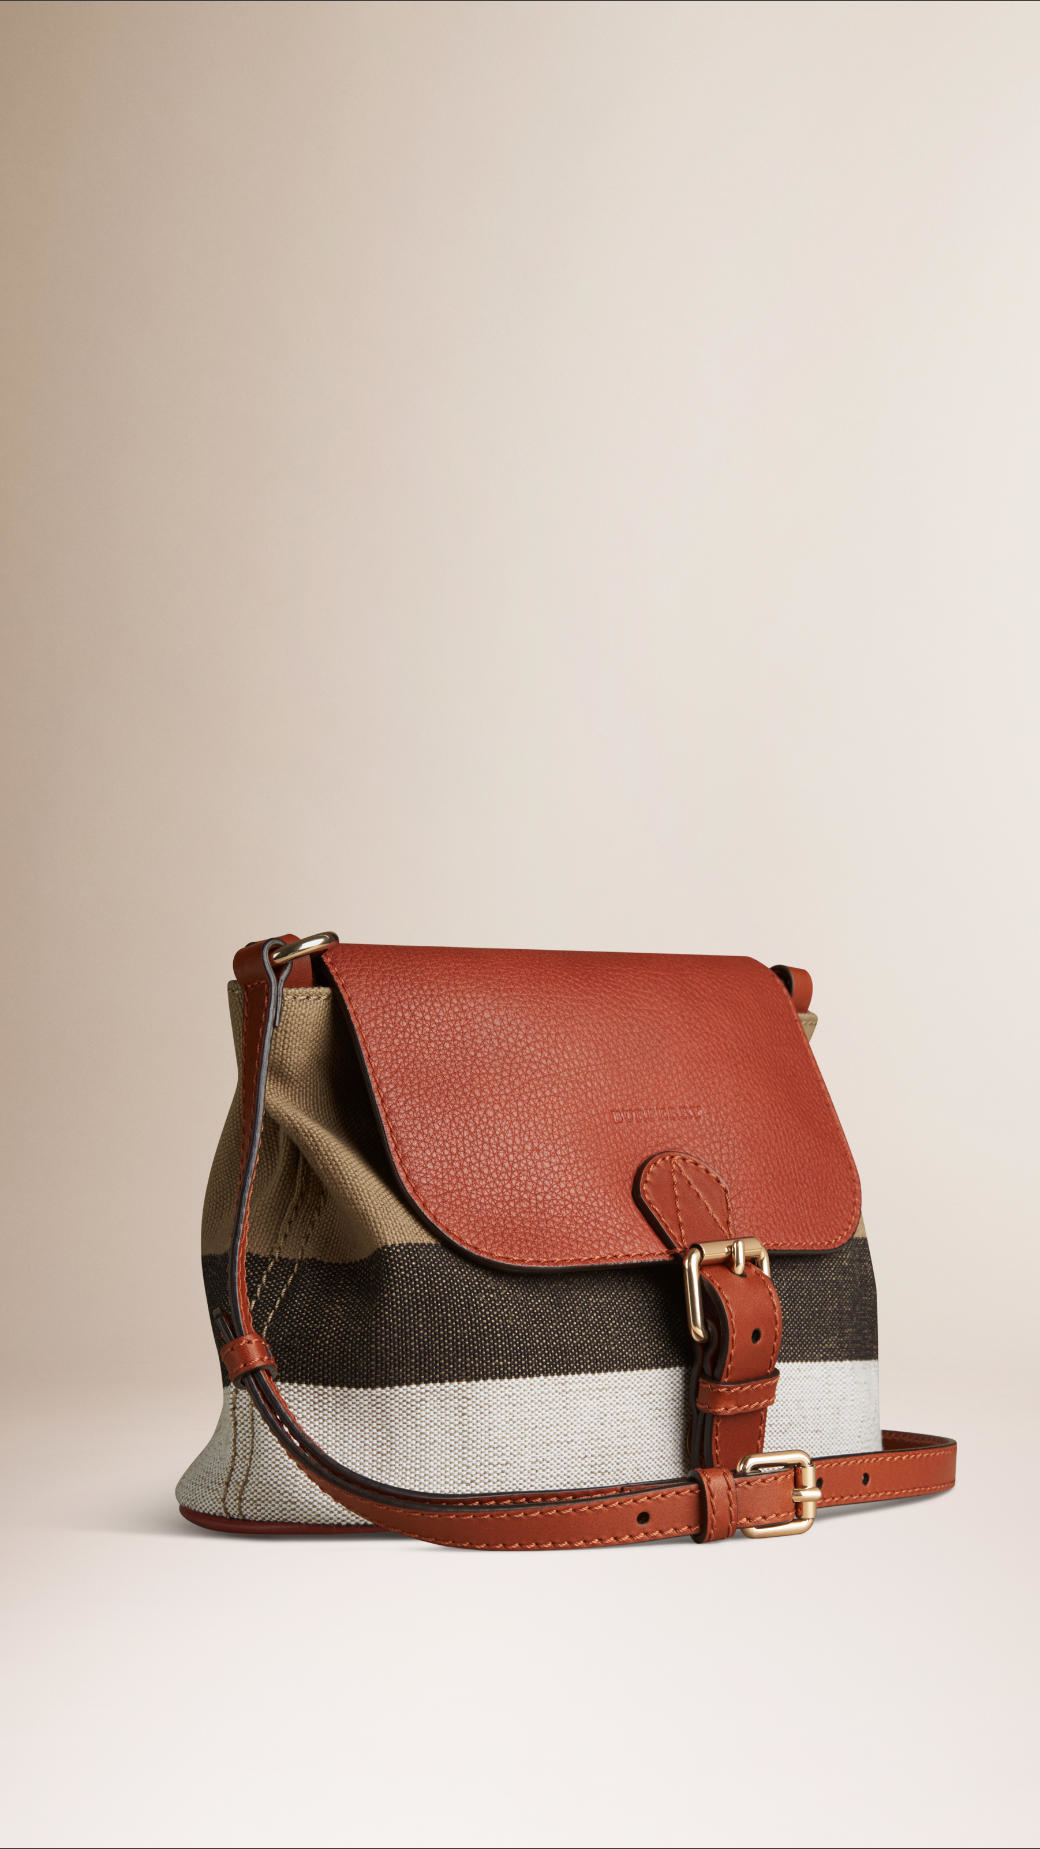 Lyst - Burberry Small Canvas Check And Leather Crossbody Bag in Brown c92fd7181b